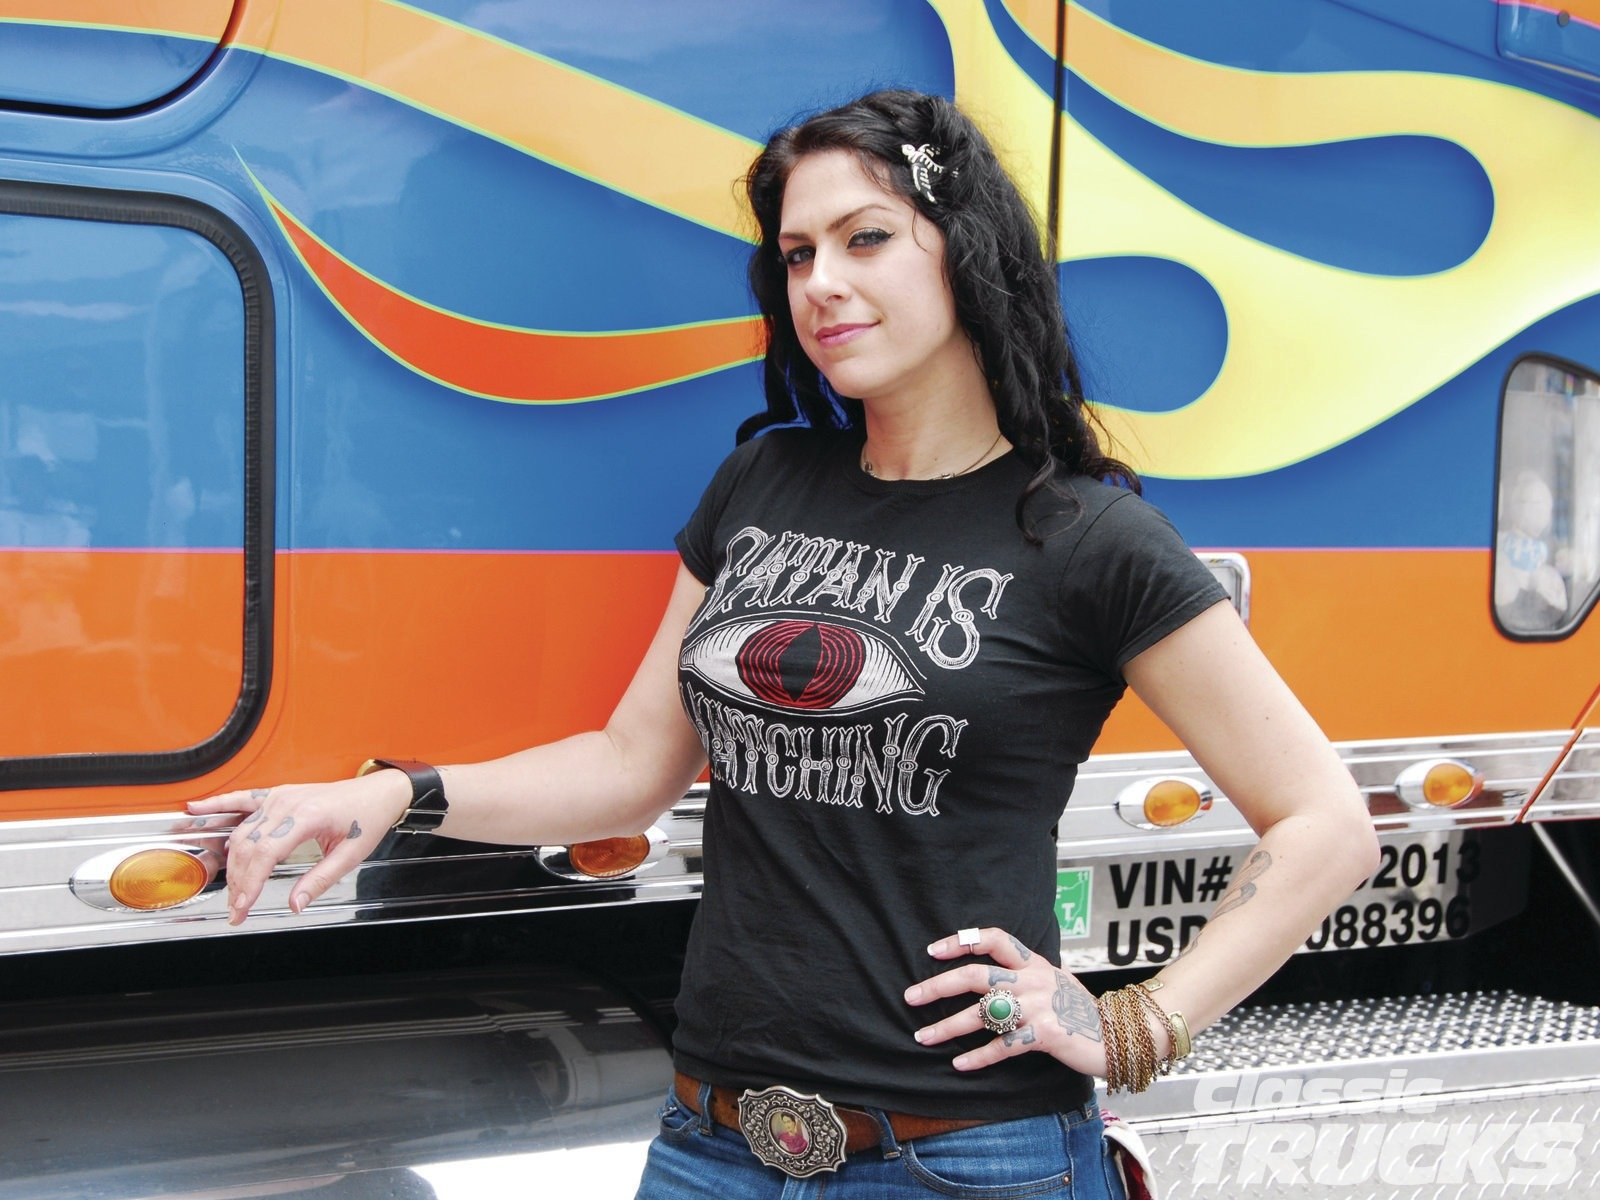 American Pickers' Danielle Colby is smiling at the camera. She is keeping one hand in her waist and the other hand is on the bus